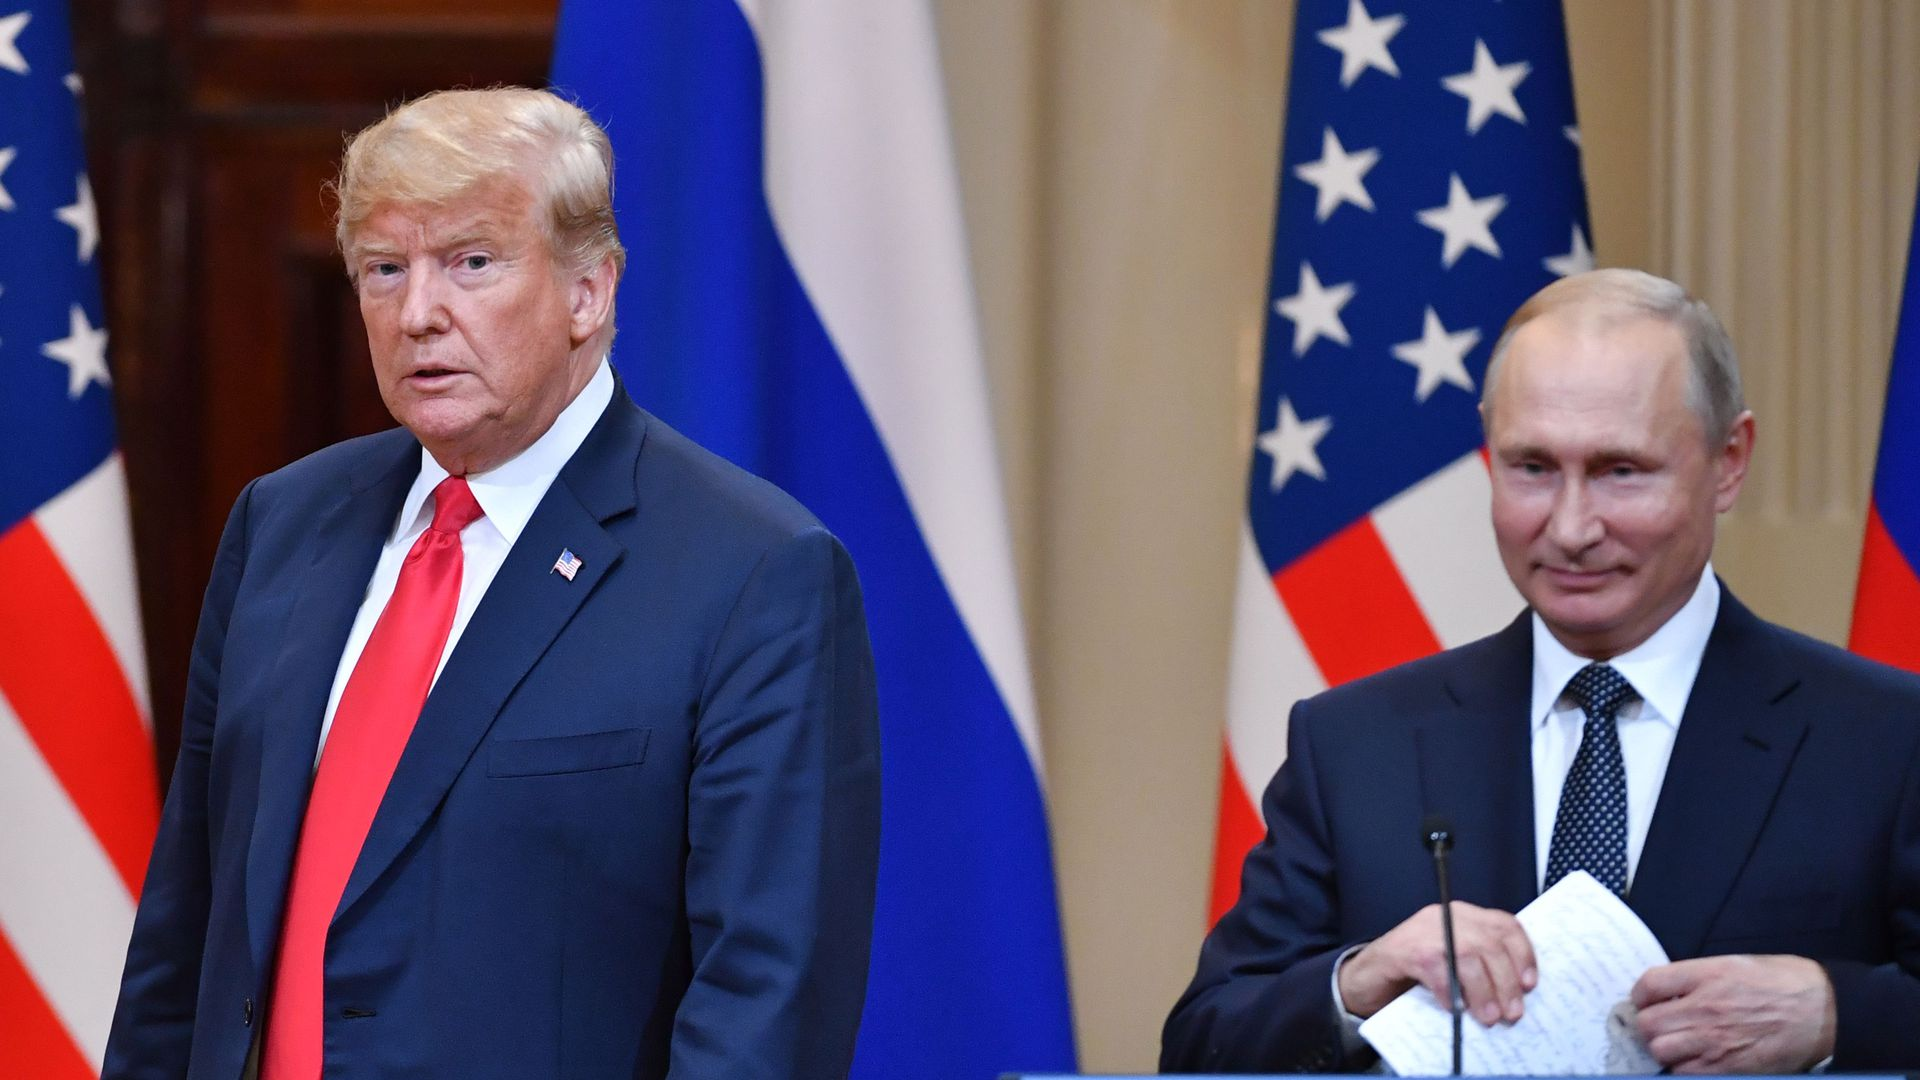 Trump spoke about the upcoming telephone conversation with Putin